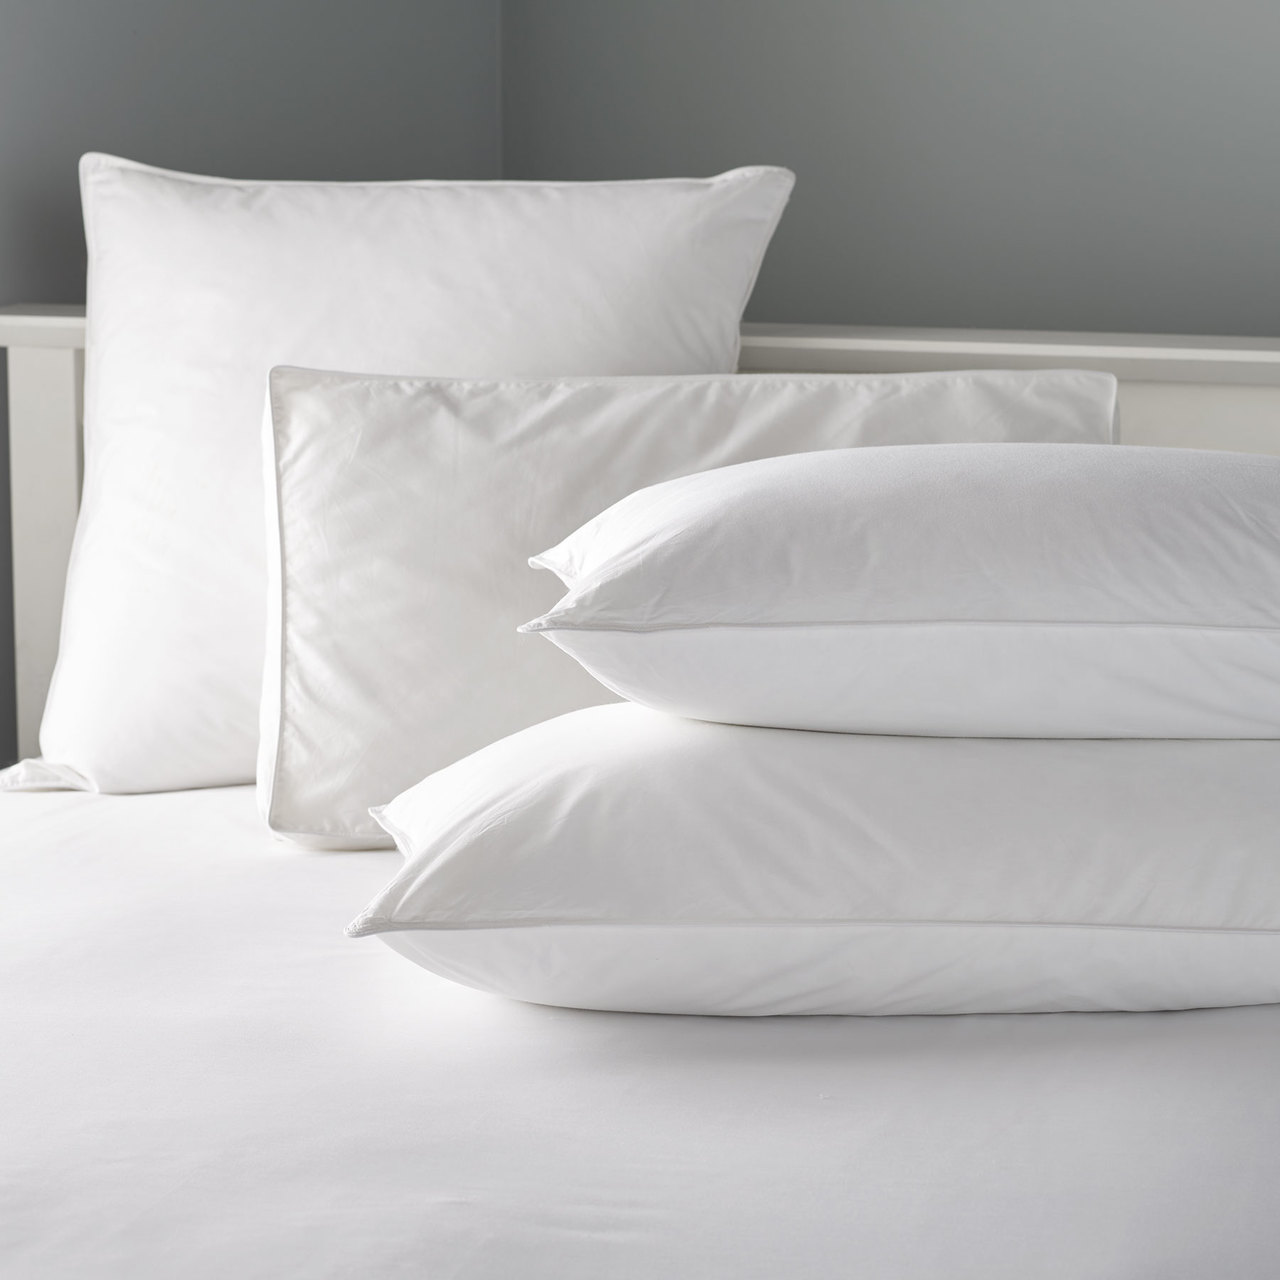 In2Linen Pillow Cases Commercial Grade 100% Cotton| One Pair White